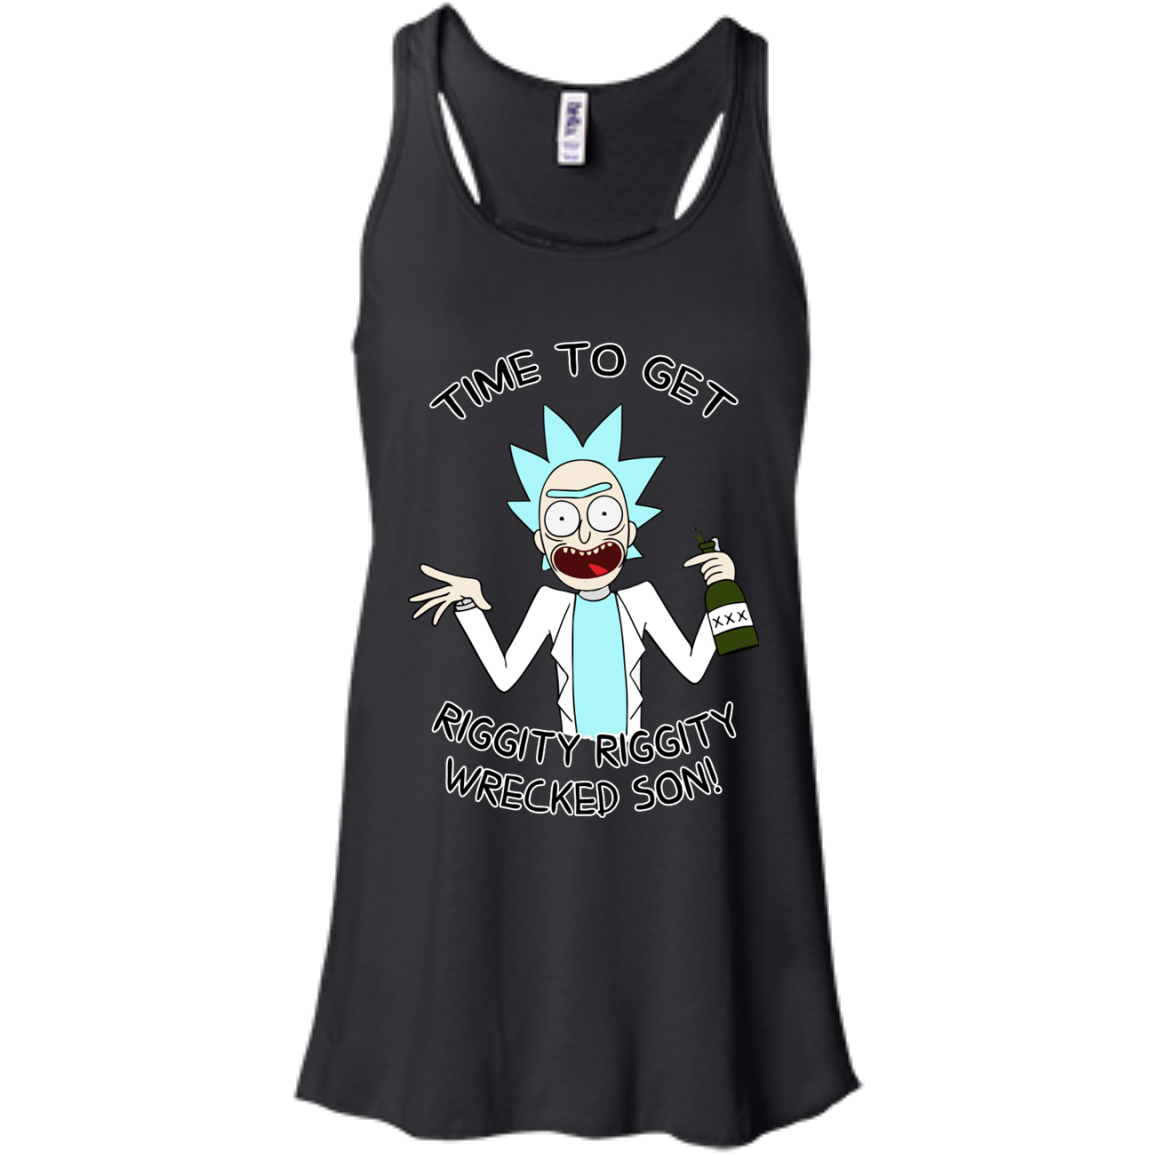 image 911px Time to get riggity riggity wrecked son T shirt